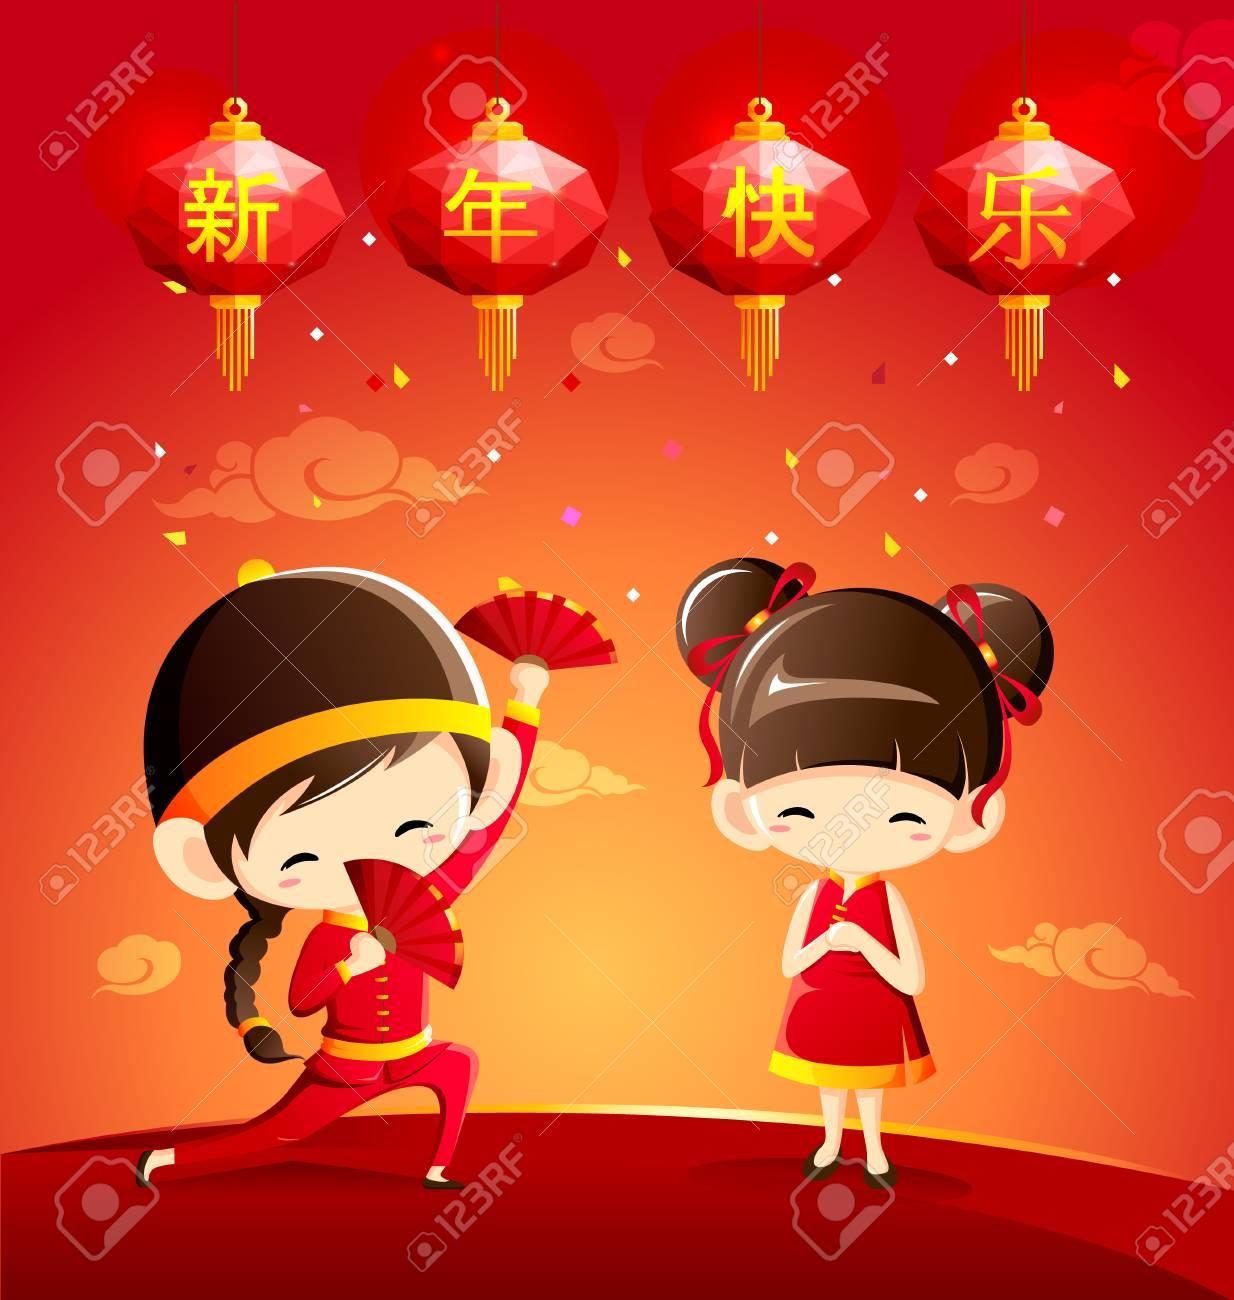 Chinese New Year Greeting Card With Children Boy And Girl In